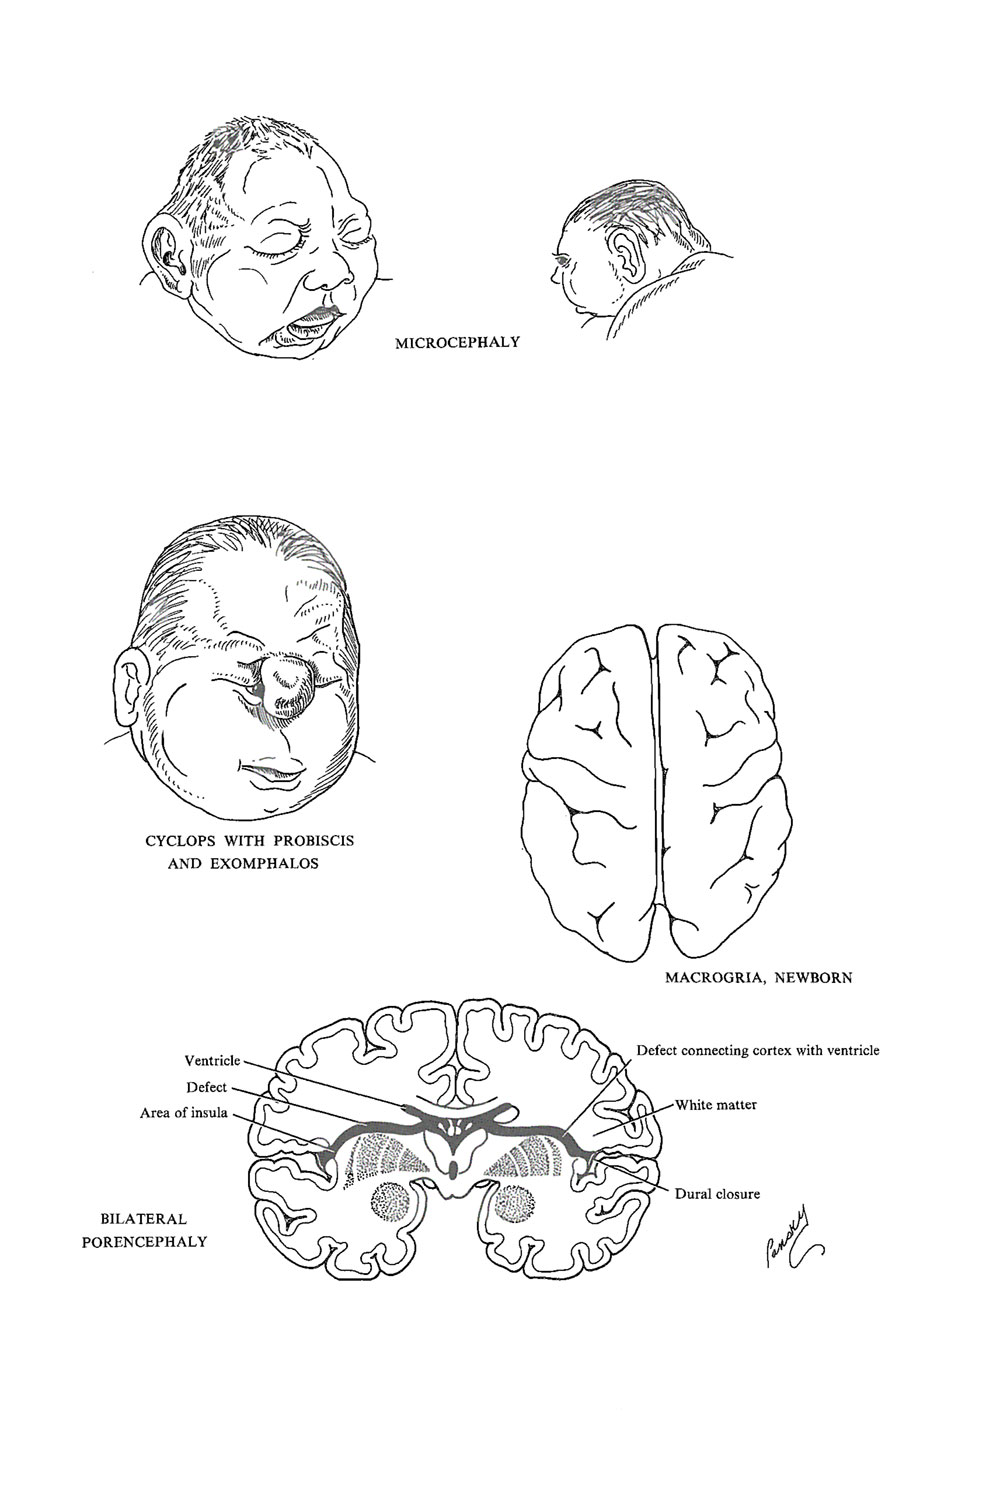 malformations of the brain: image #1